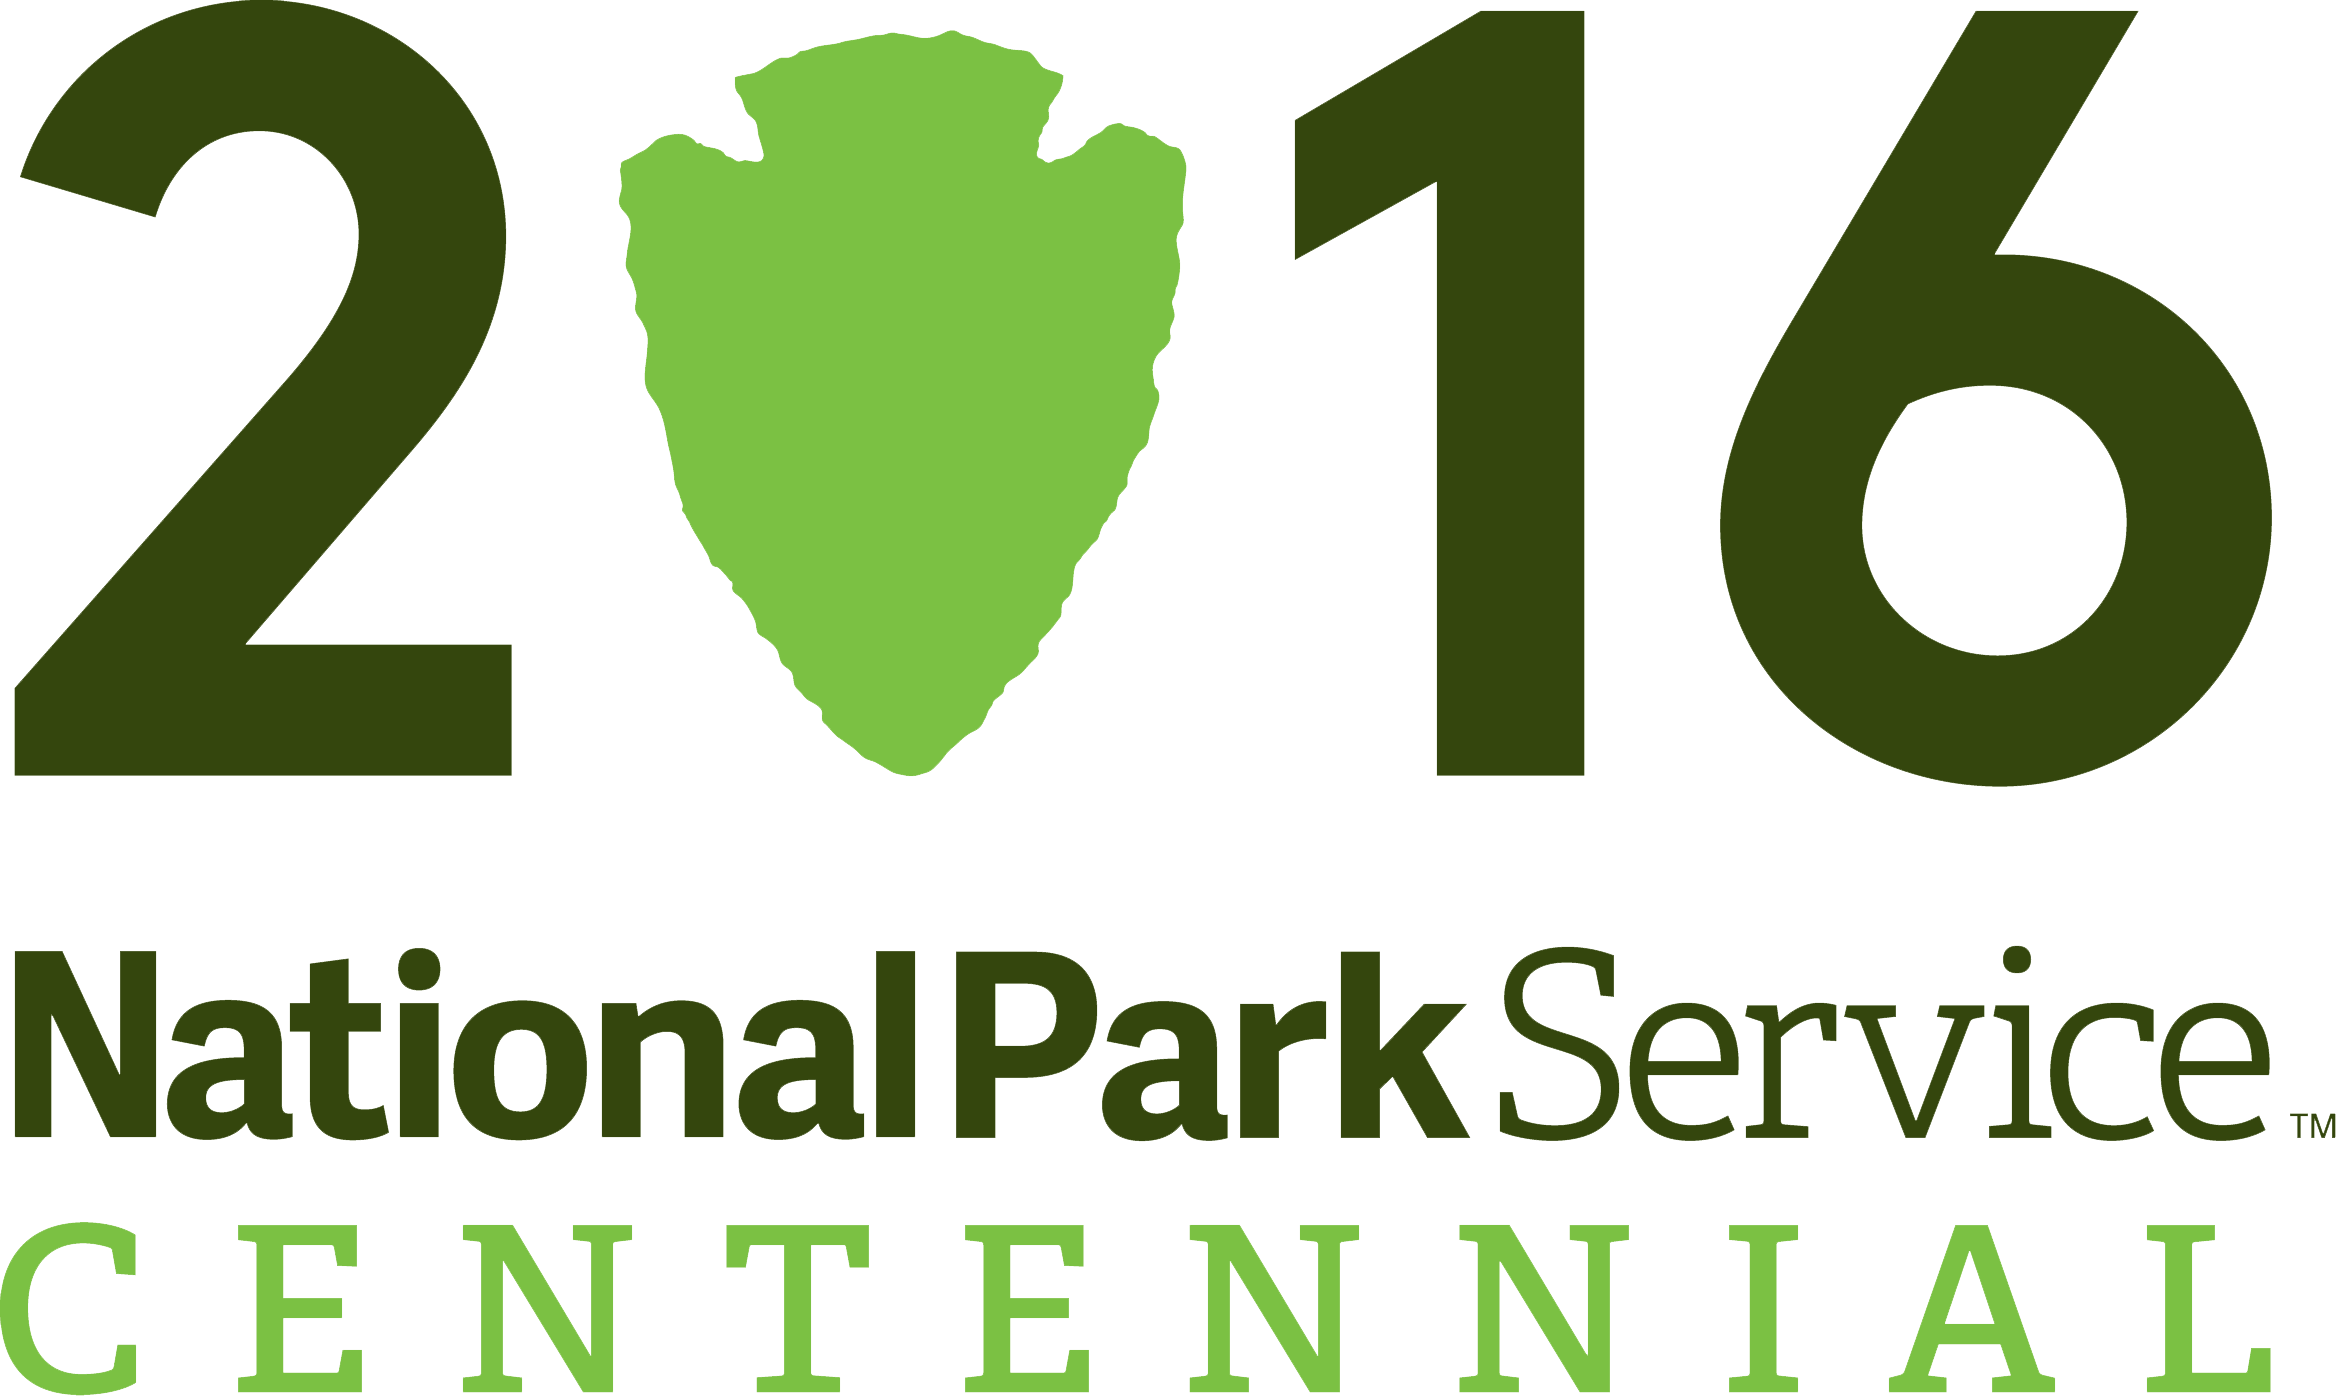 Special programs clipart picture freeuse Special Programs Celebrate National Park Service 100th ... picture freeuse